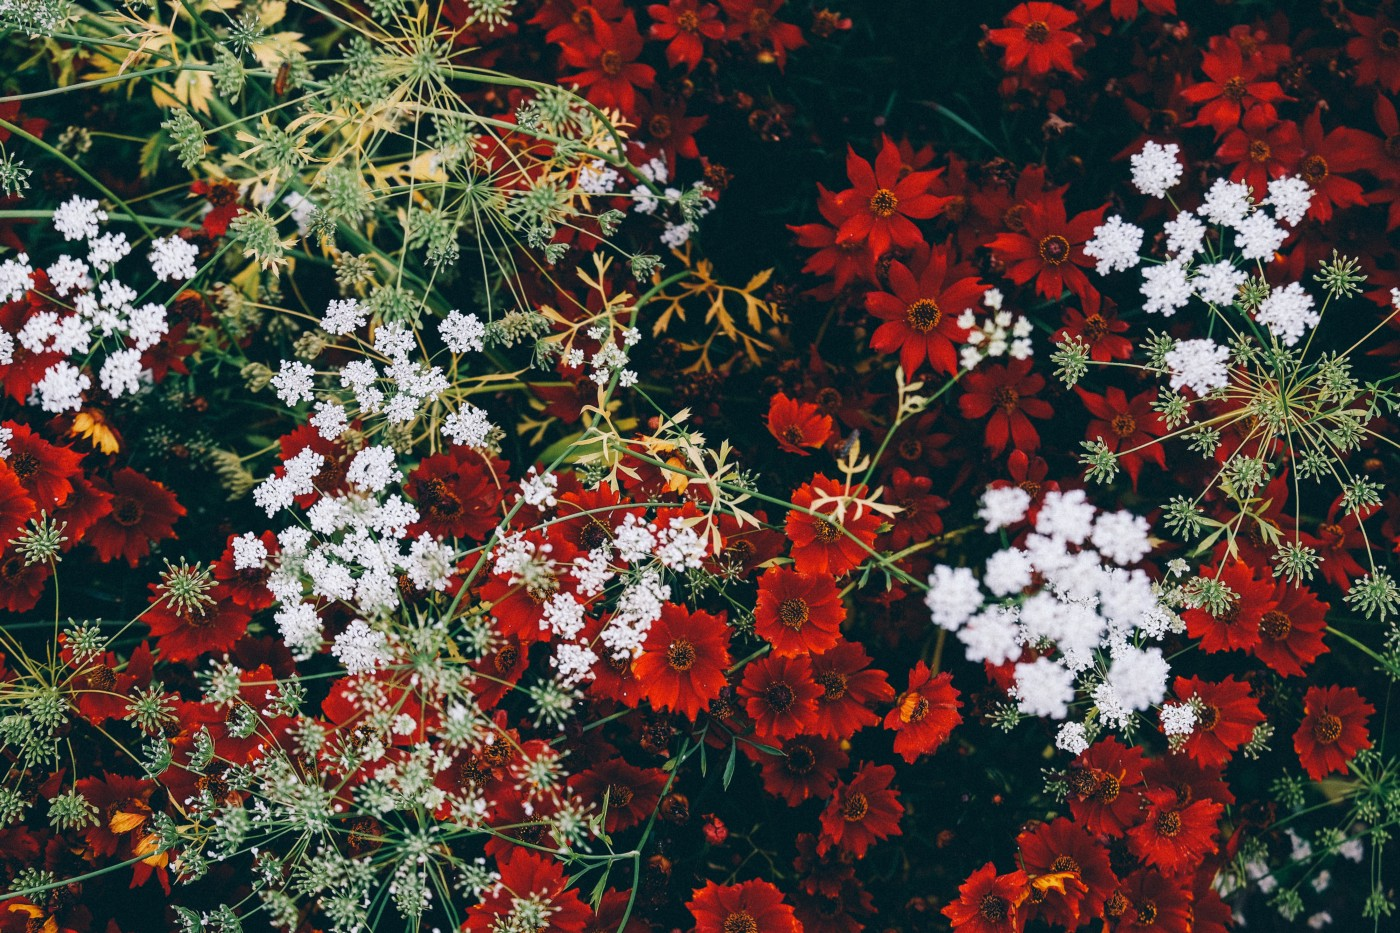 Red and white flowers on the ground — picture taken from above